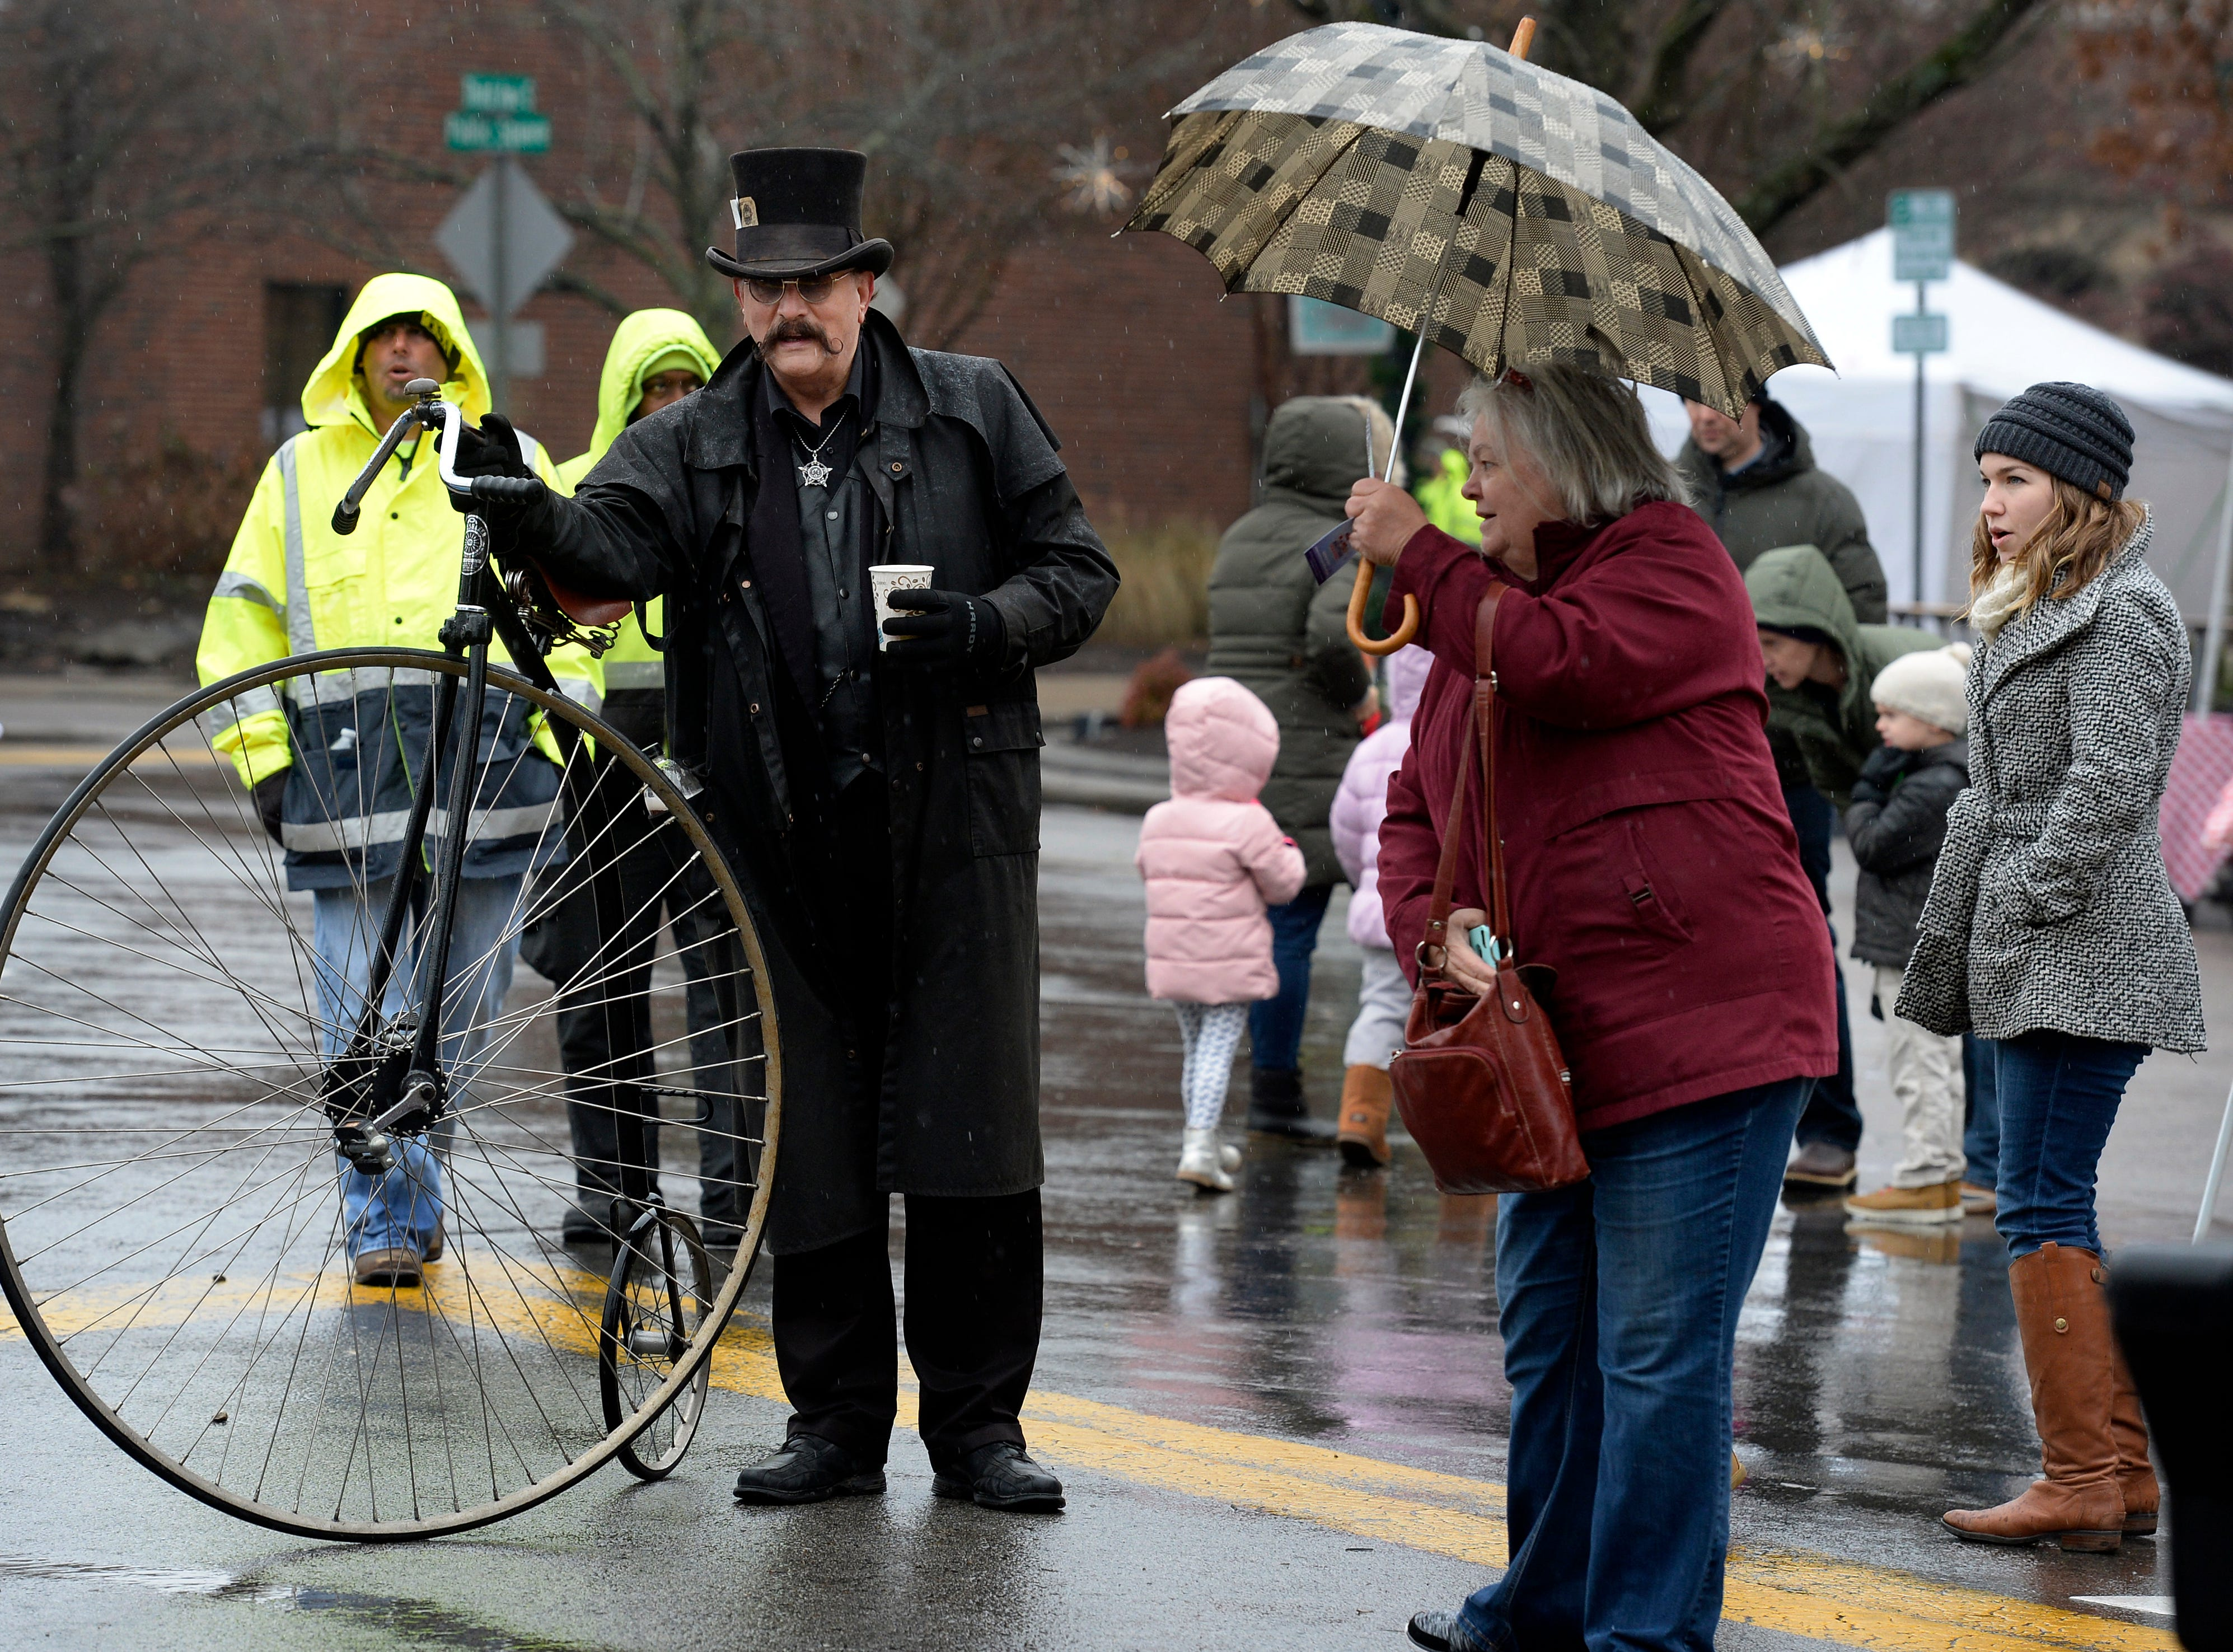 Daniel Dark, left, with his vintage bicycle during the Dickens of a Christmas on Saturday, Dec. 8, 2018, in Franklin, Tenn.